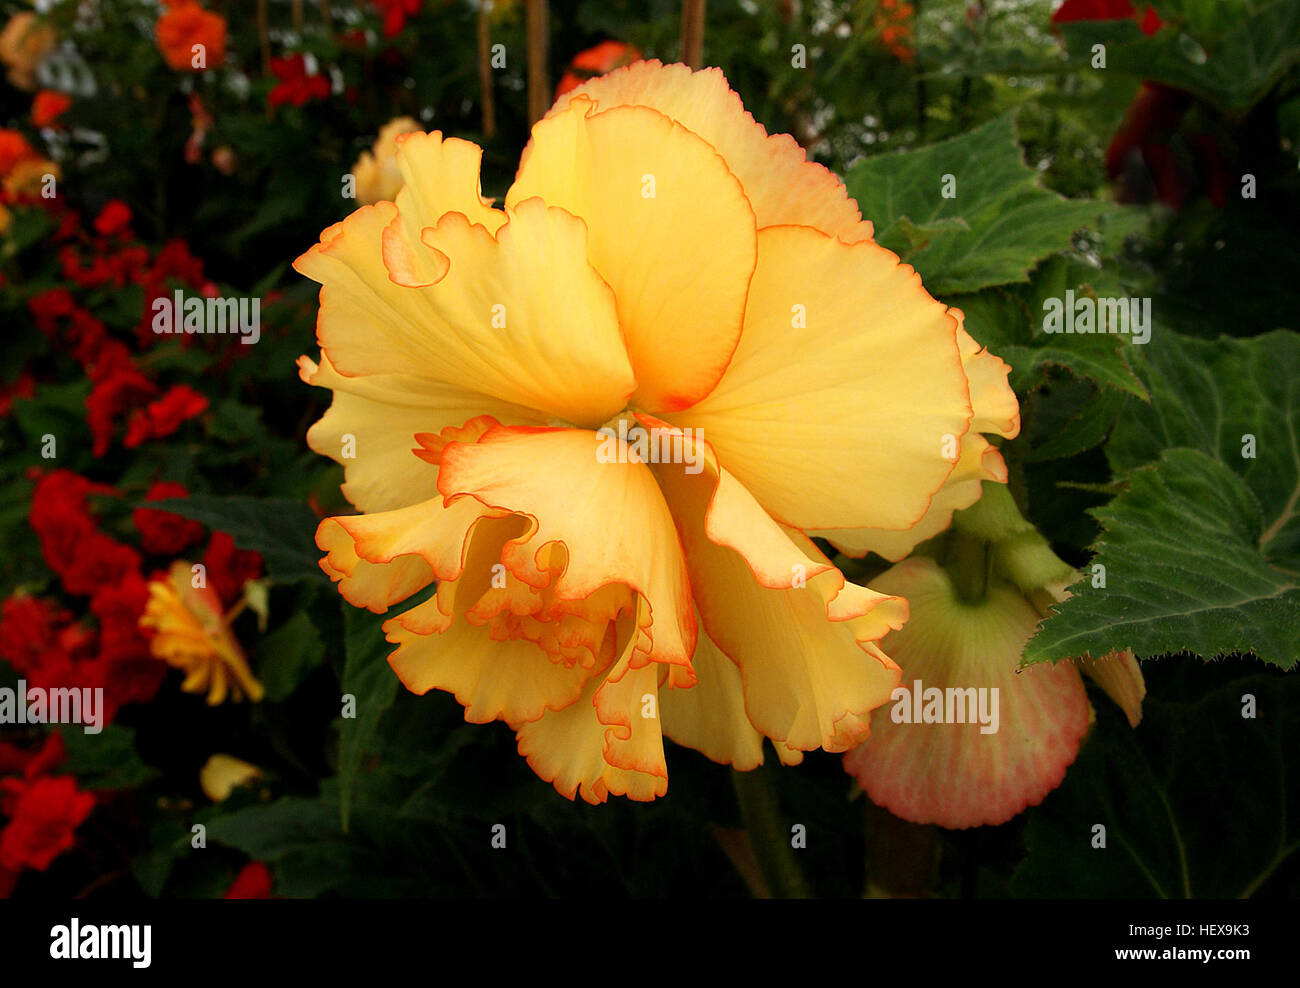 Begonia Is A Genus Of Perennial Flowering Plants In The Family Stock